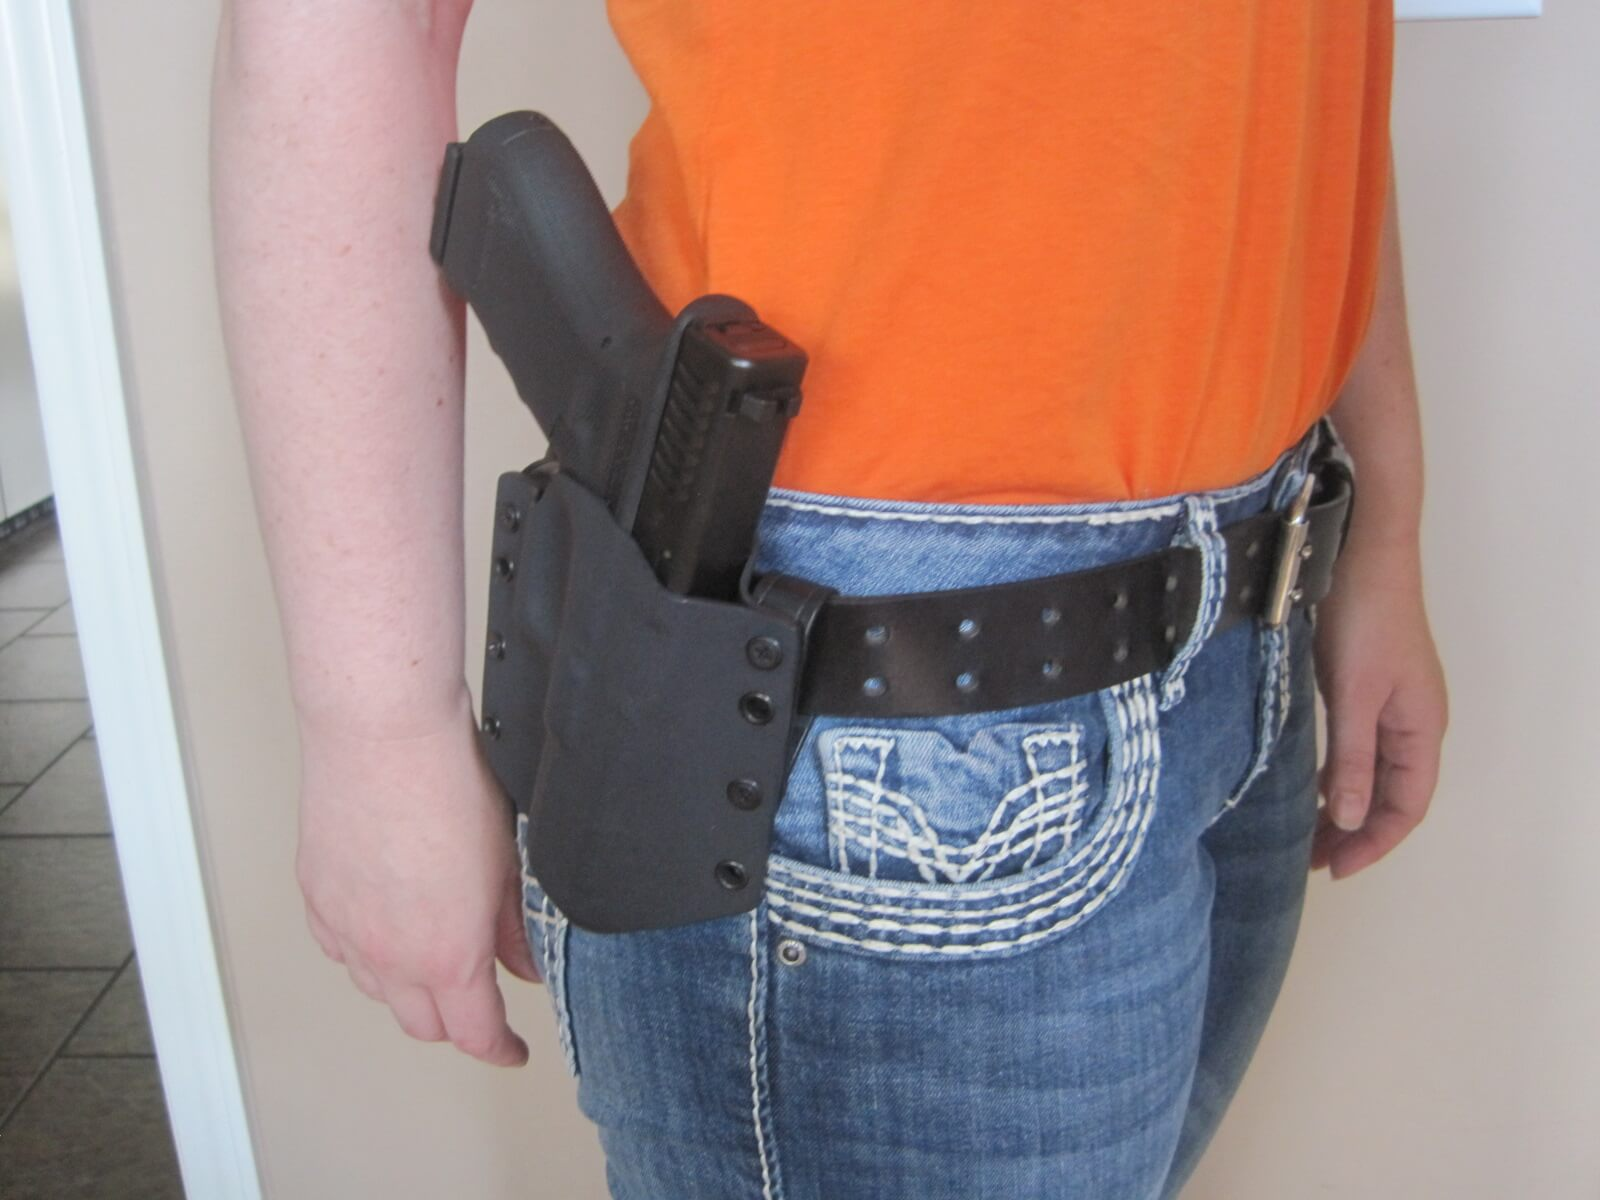 Regular leather belt, G17 OWB holster